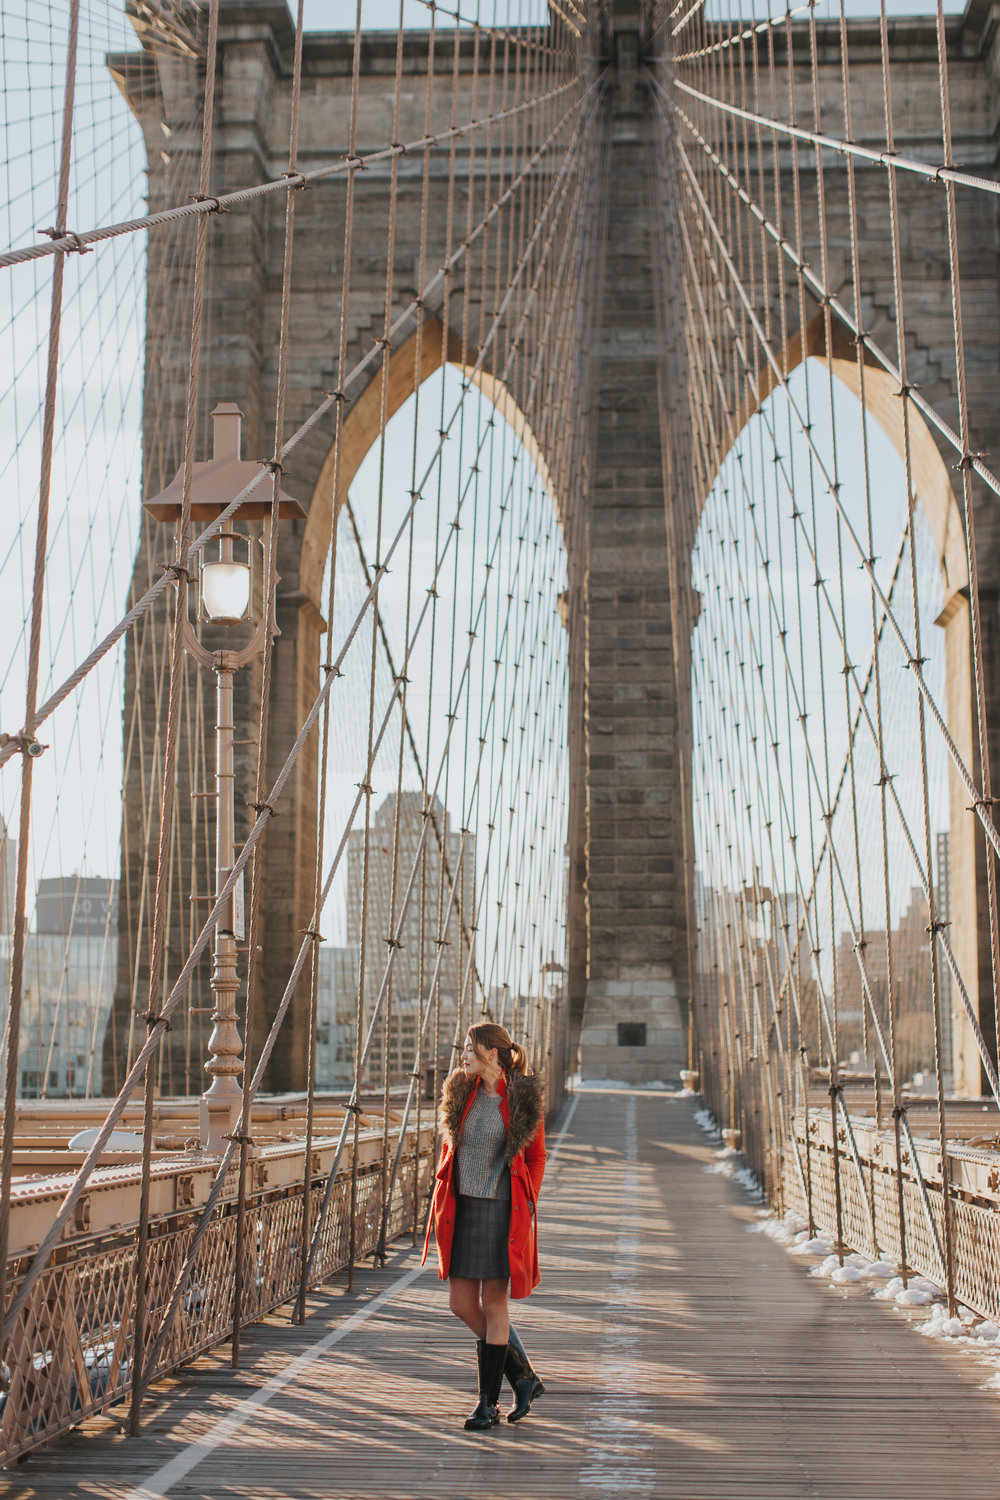 New York City portrait photographer, New york city wedding photographer, Brooklyn bridge portrait, brooklyn bridge photos, brooklyn bridge sunrise session, Brooklyn bridge inspiration515.JPG